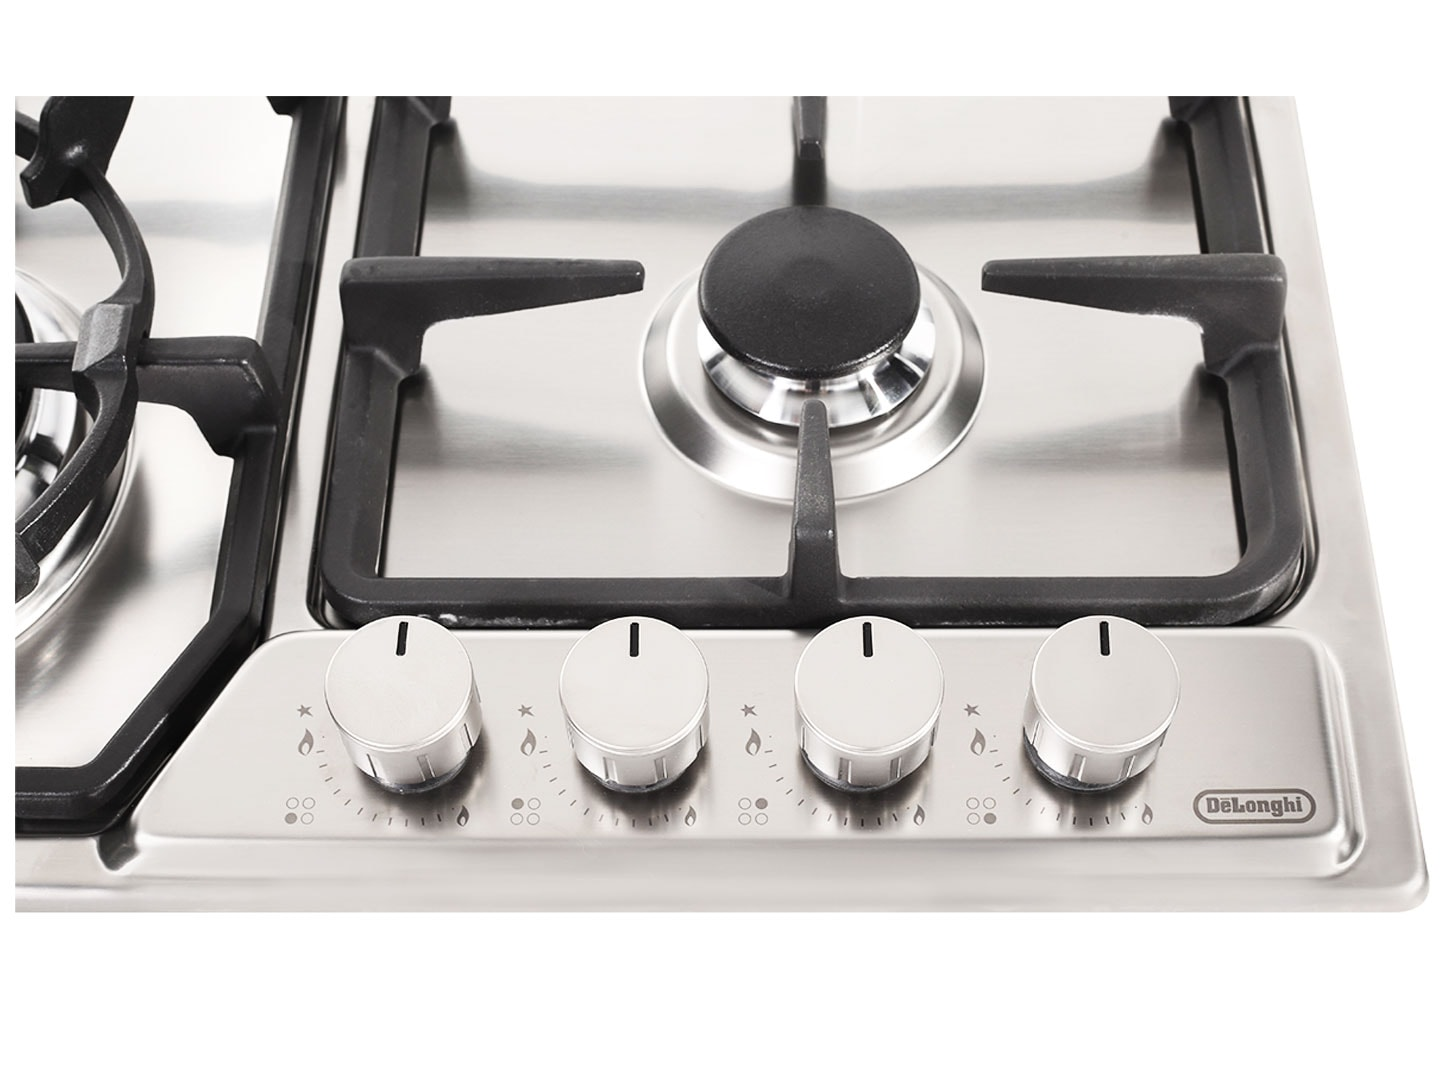 Stainless Steel 60cm Gas Cooktop with Wok Burner - DEGH60 Front Controls